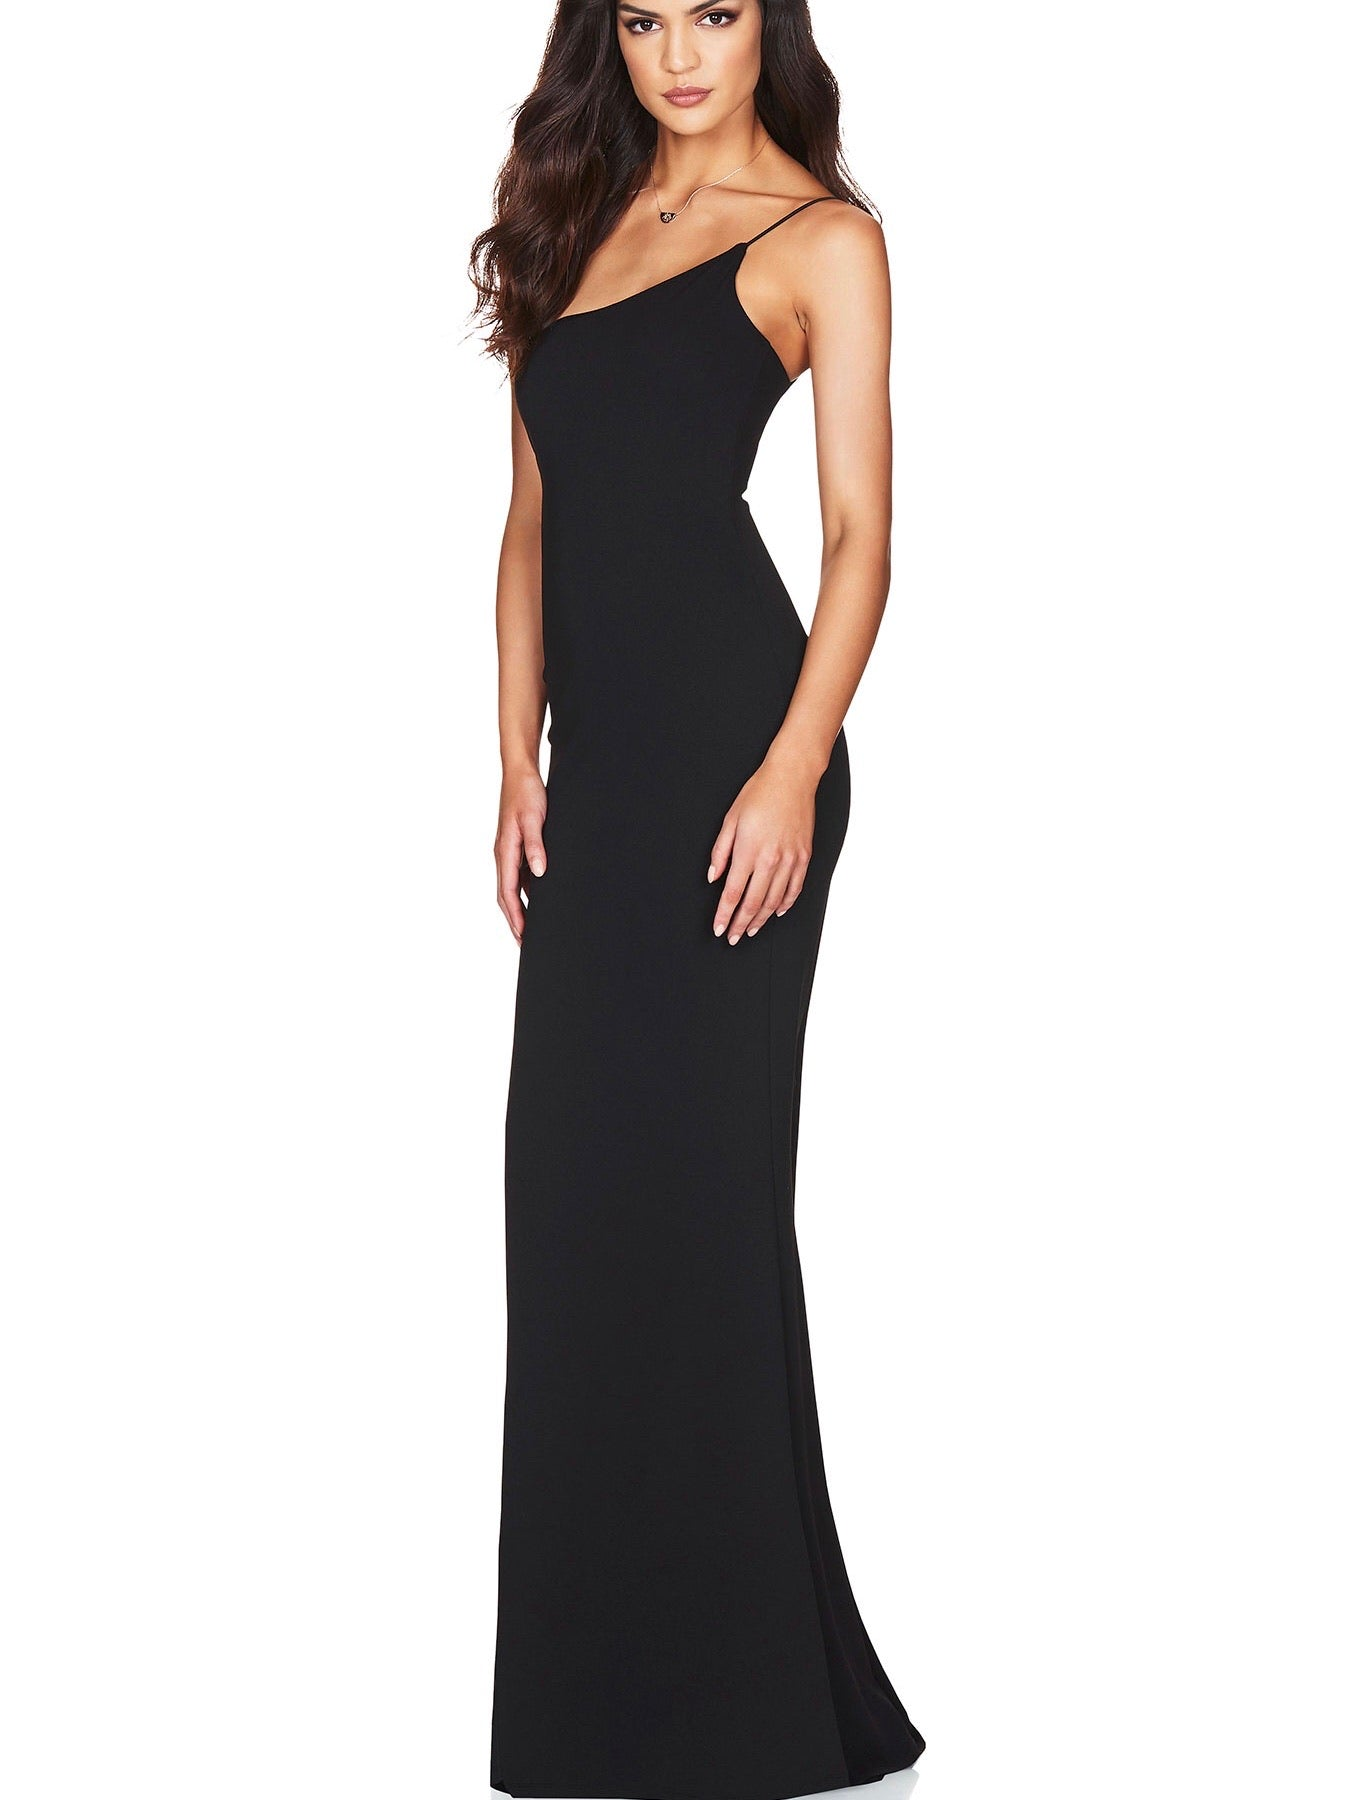 Jasmine One Shoulder Gown - Black